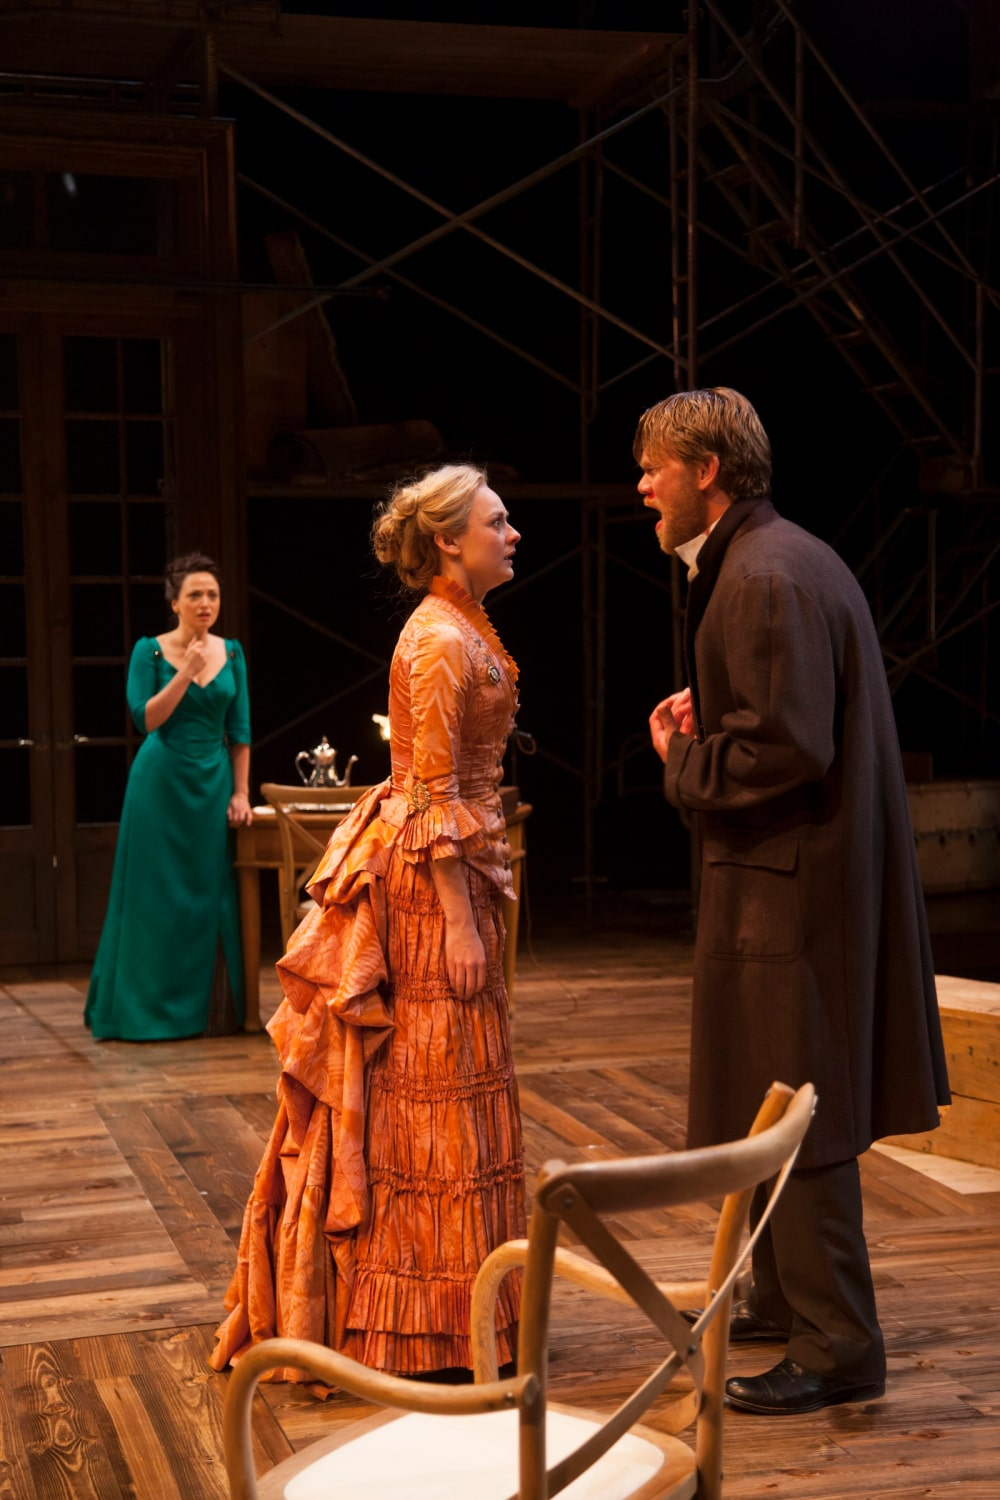 Woman in orange layered gown argues with bearded man in long coat, with green-dressed woman watching behind.